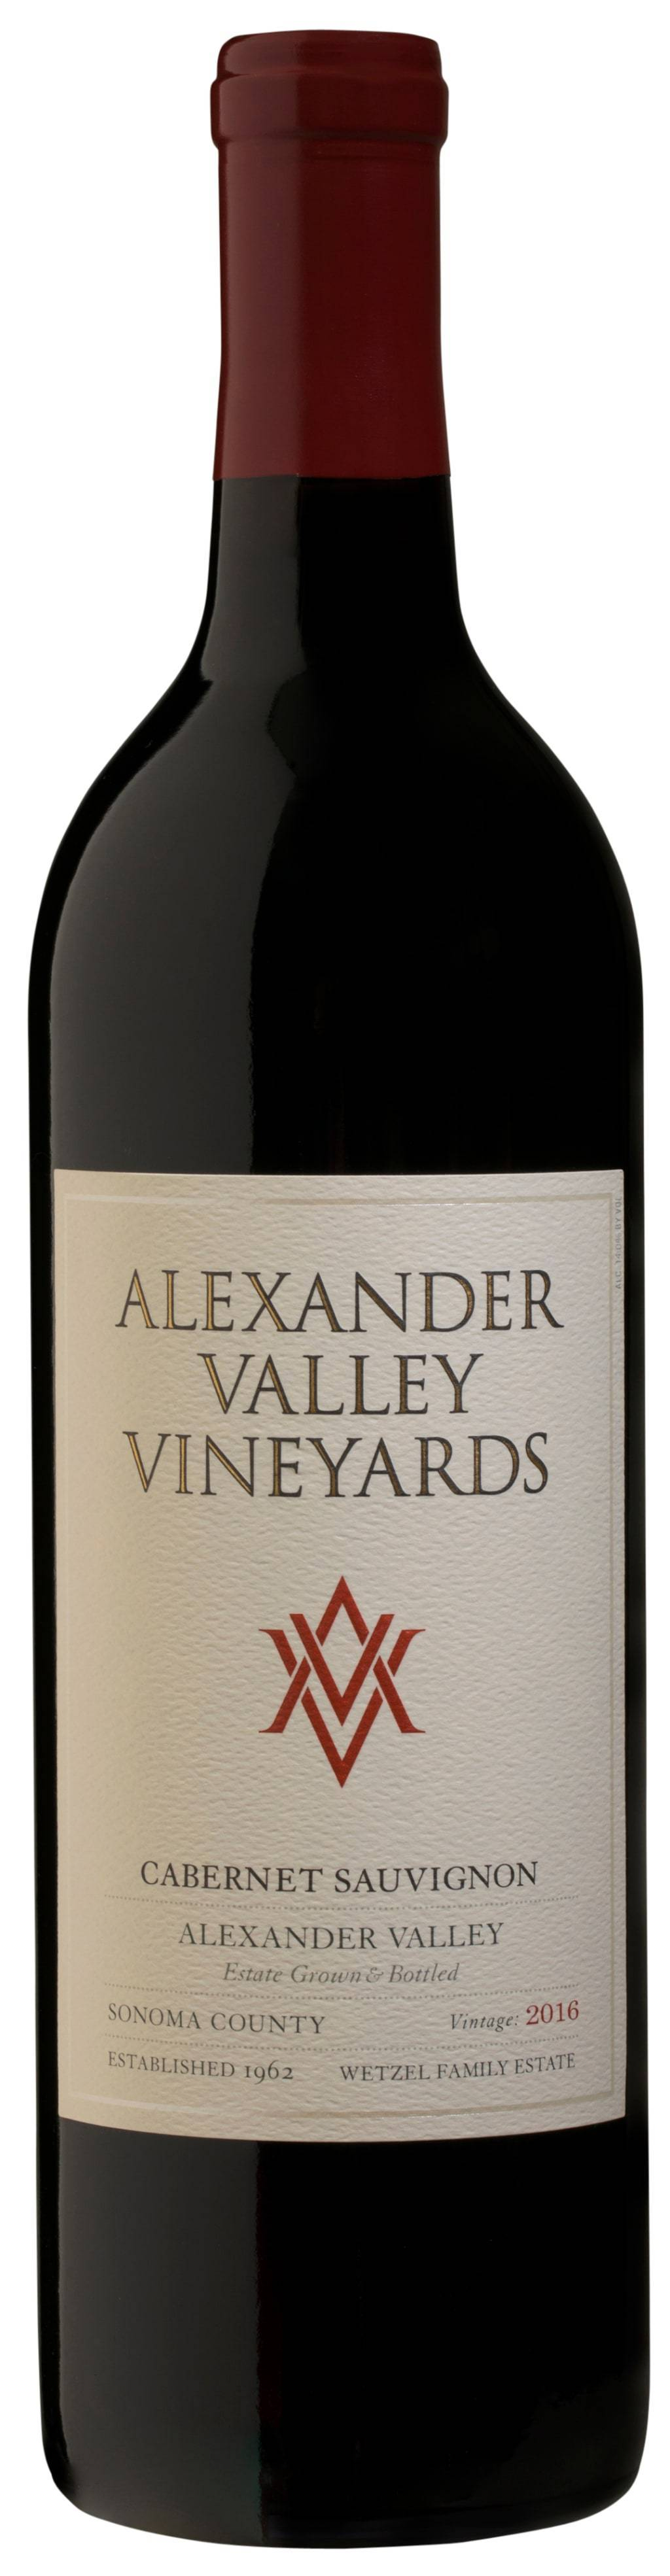 Alexander Valley Vineyards Cabernet Sauvignon Organic 2016